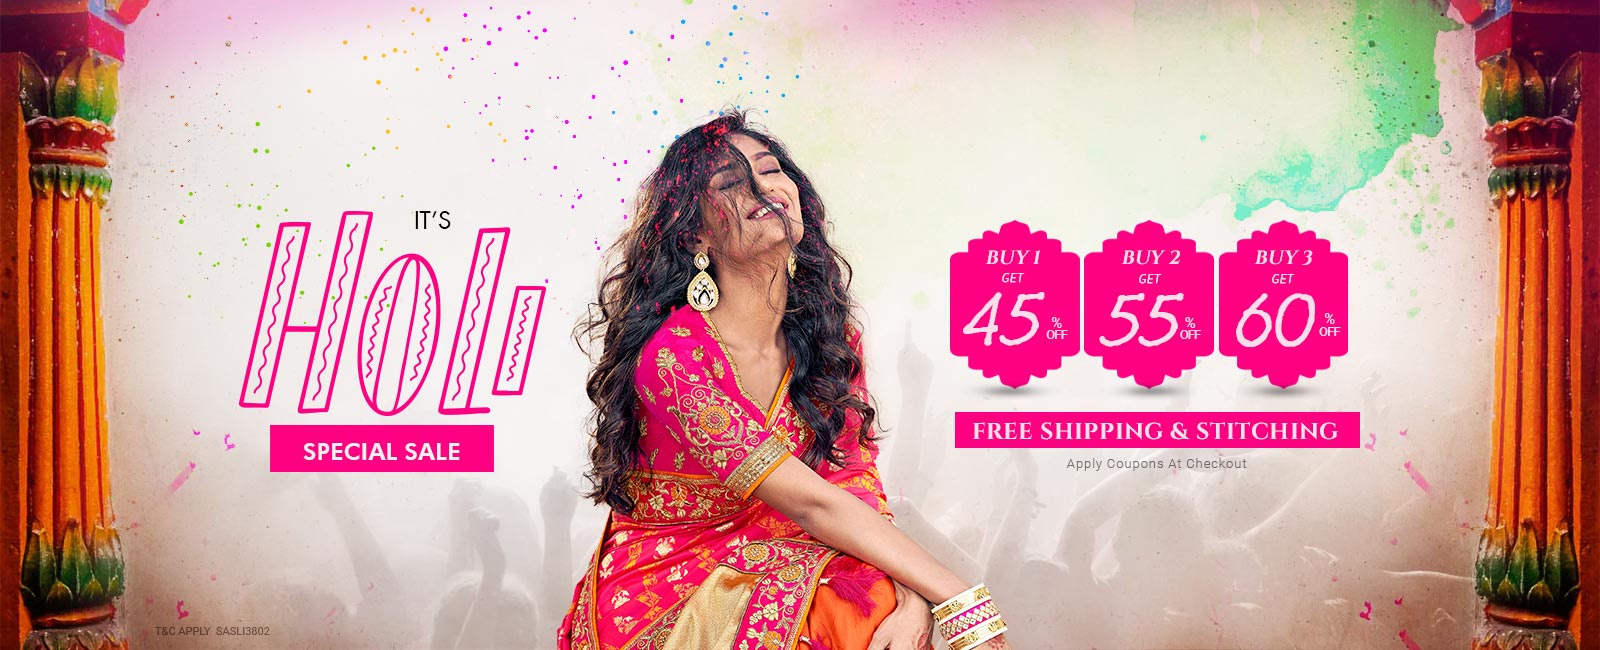 Buy 3 At Flat 60% off + Free shipping & stitching